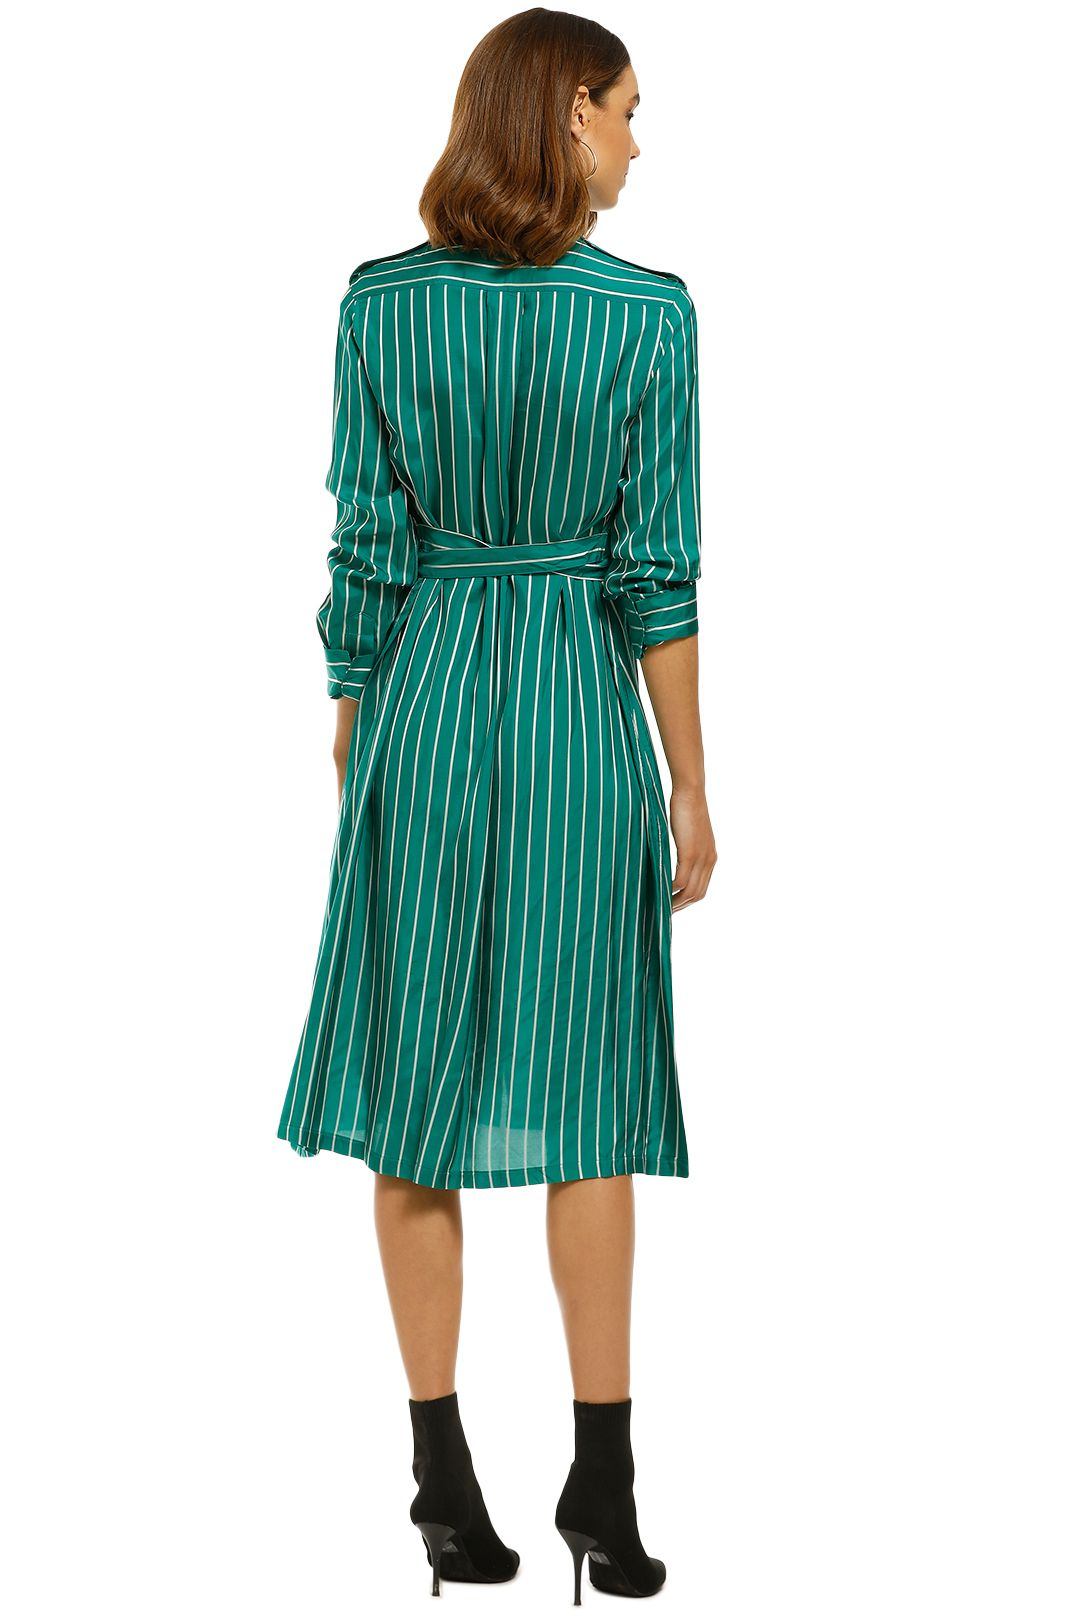 Scanlan Theodore - Stripe Shirt Dress - Emerald - Back